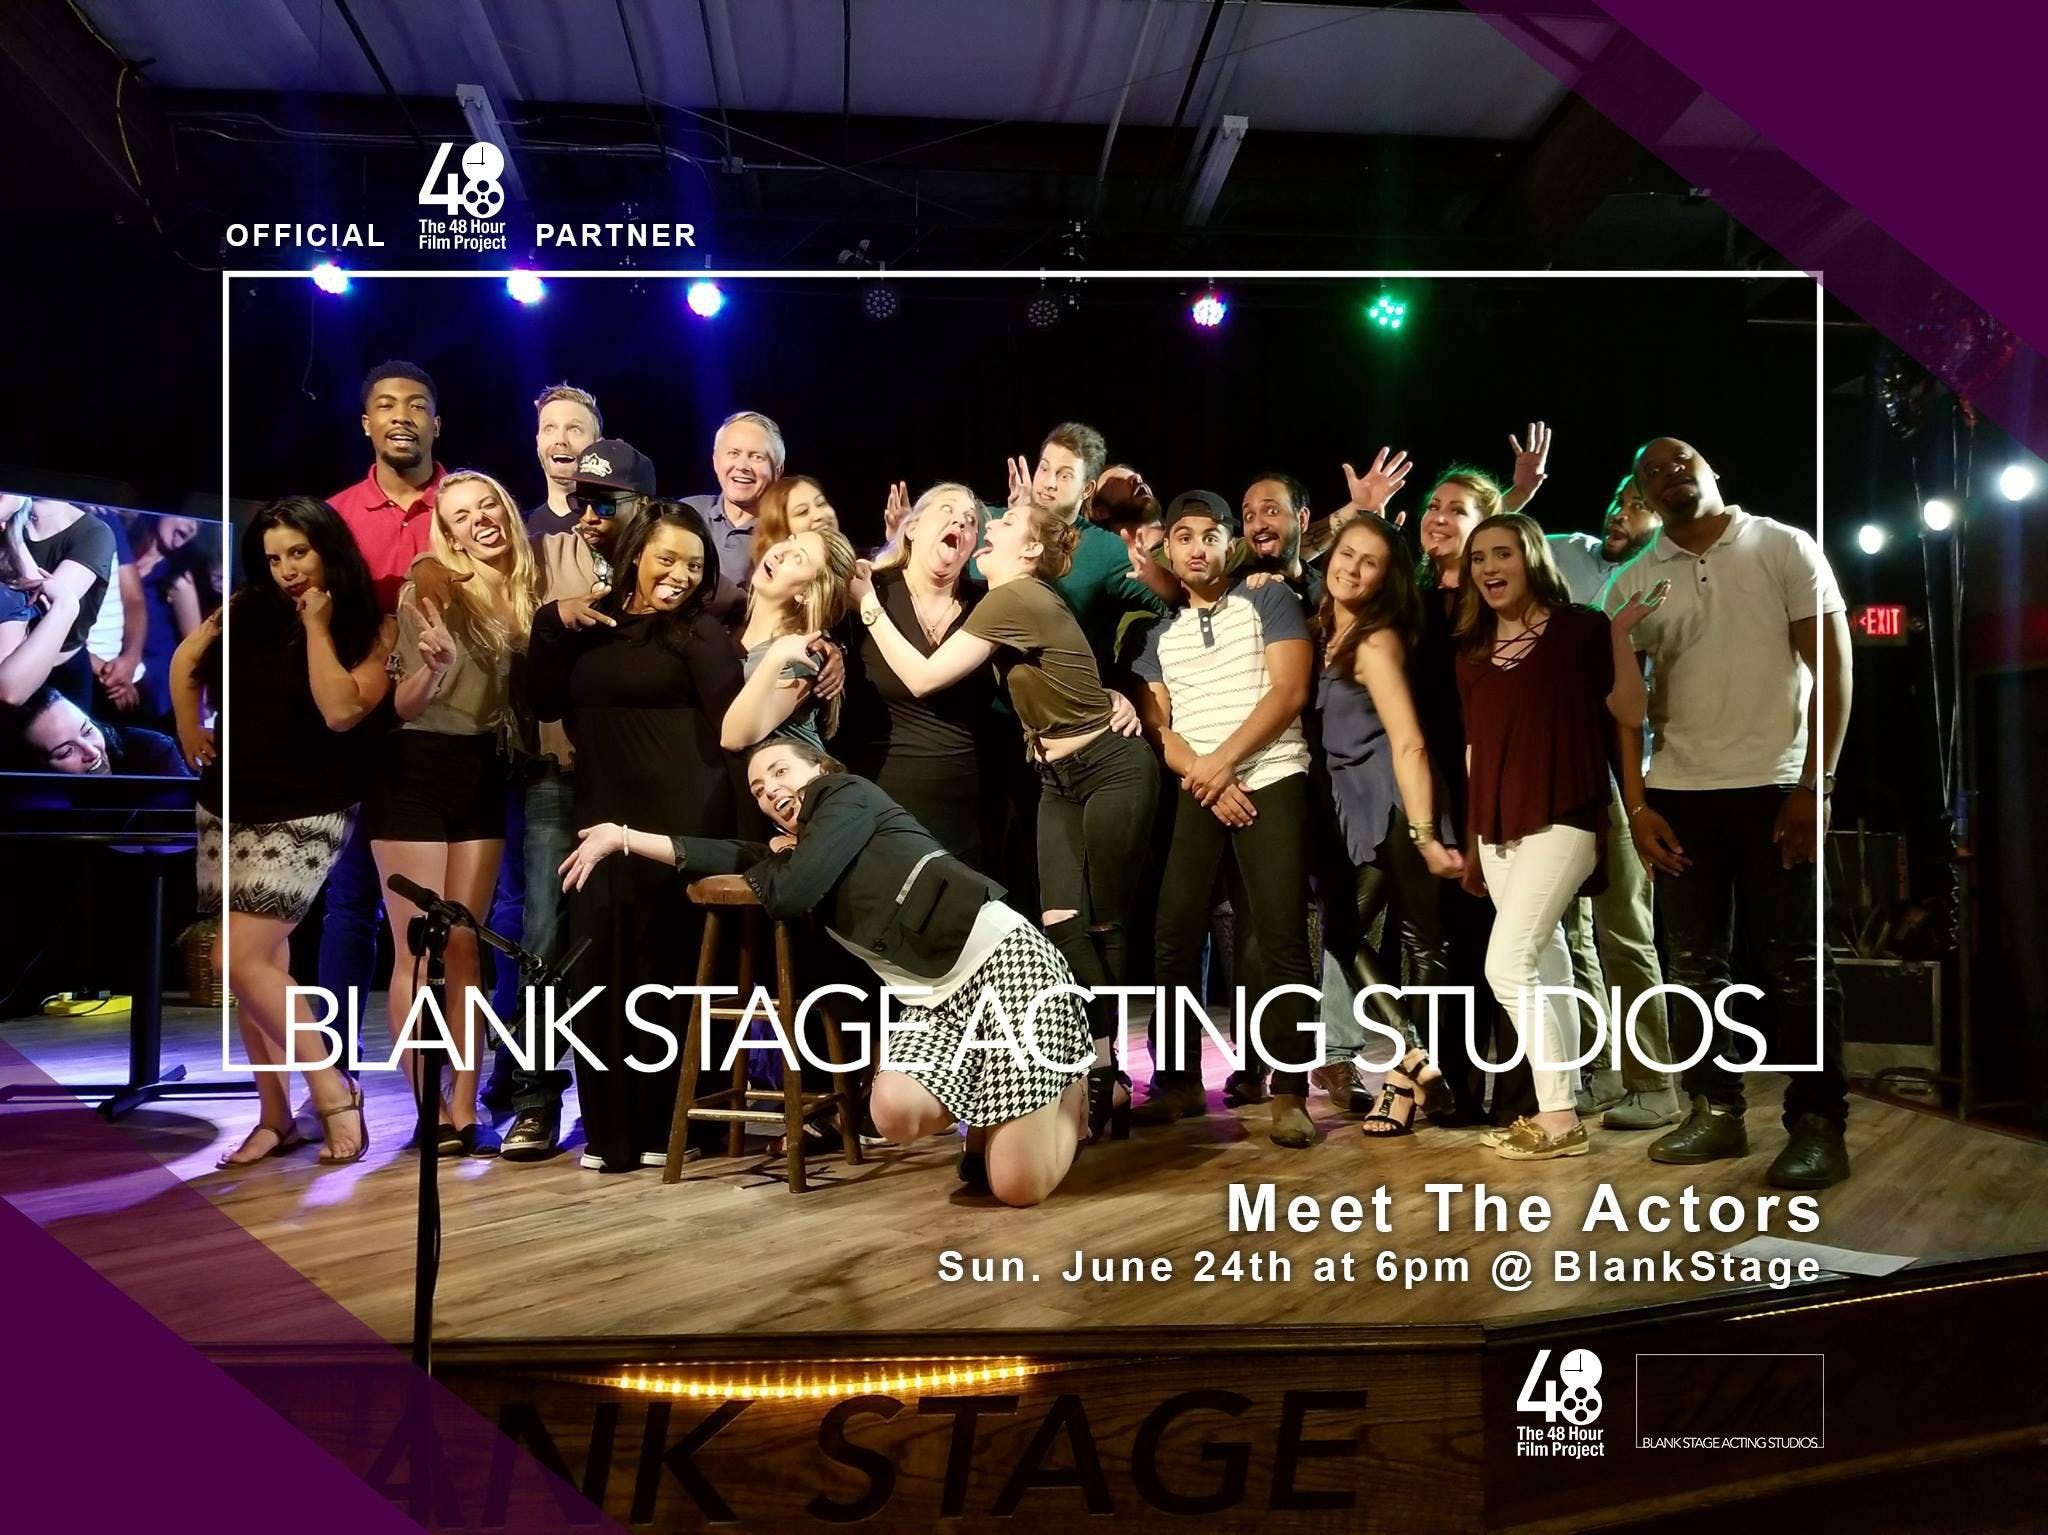 48hfp: Meet The Actors With Blank stage studi